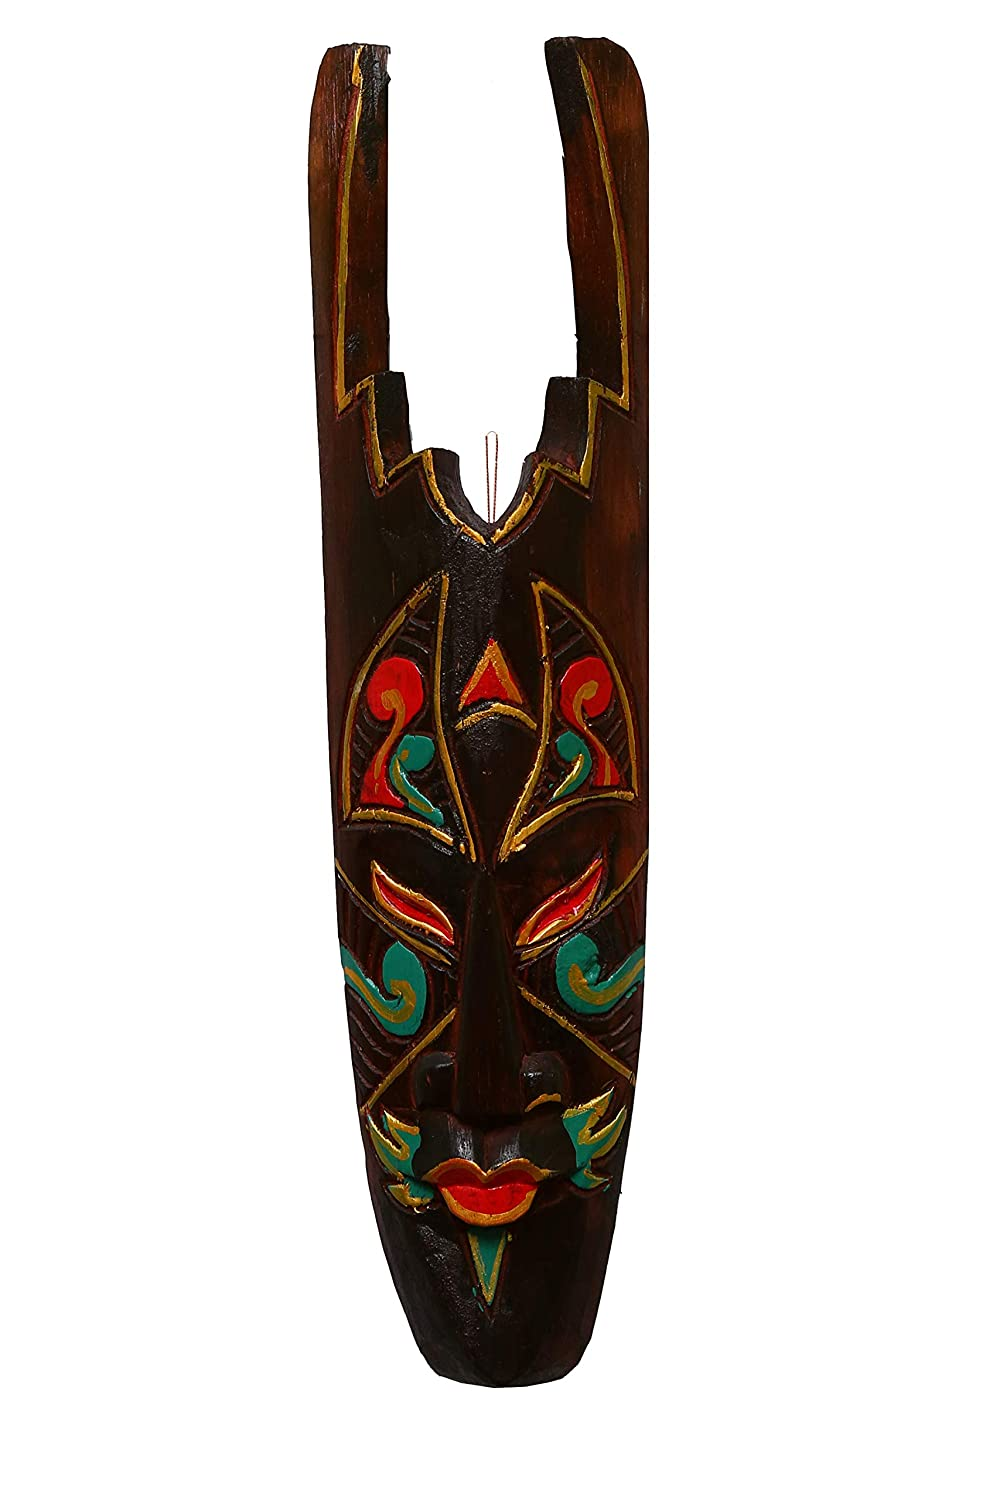 Nolin Wooden Wall Decor Mask (Multicolour)